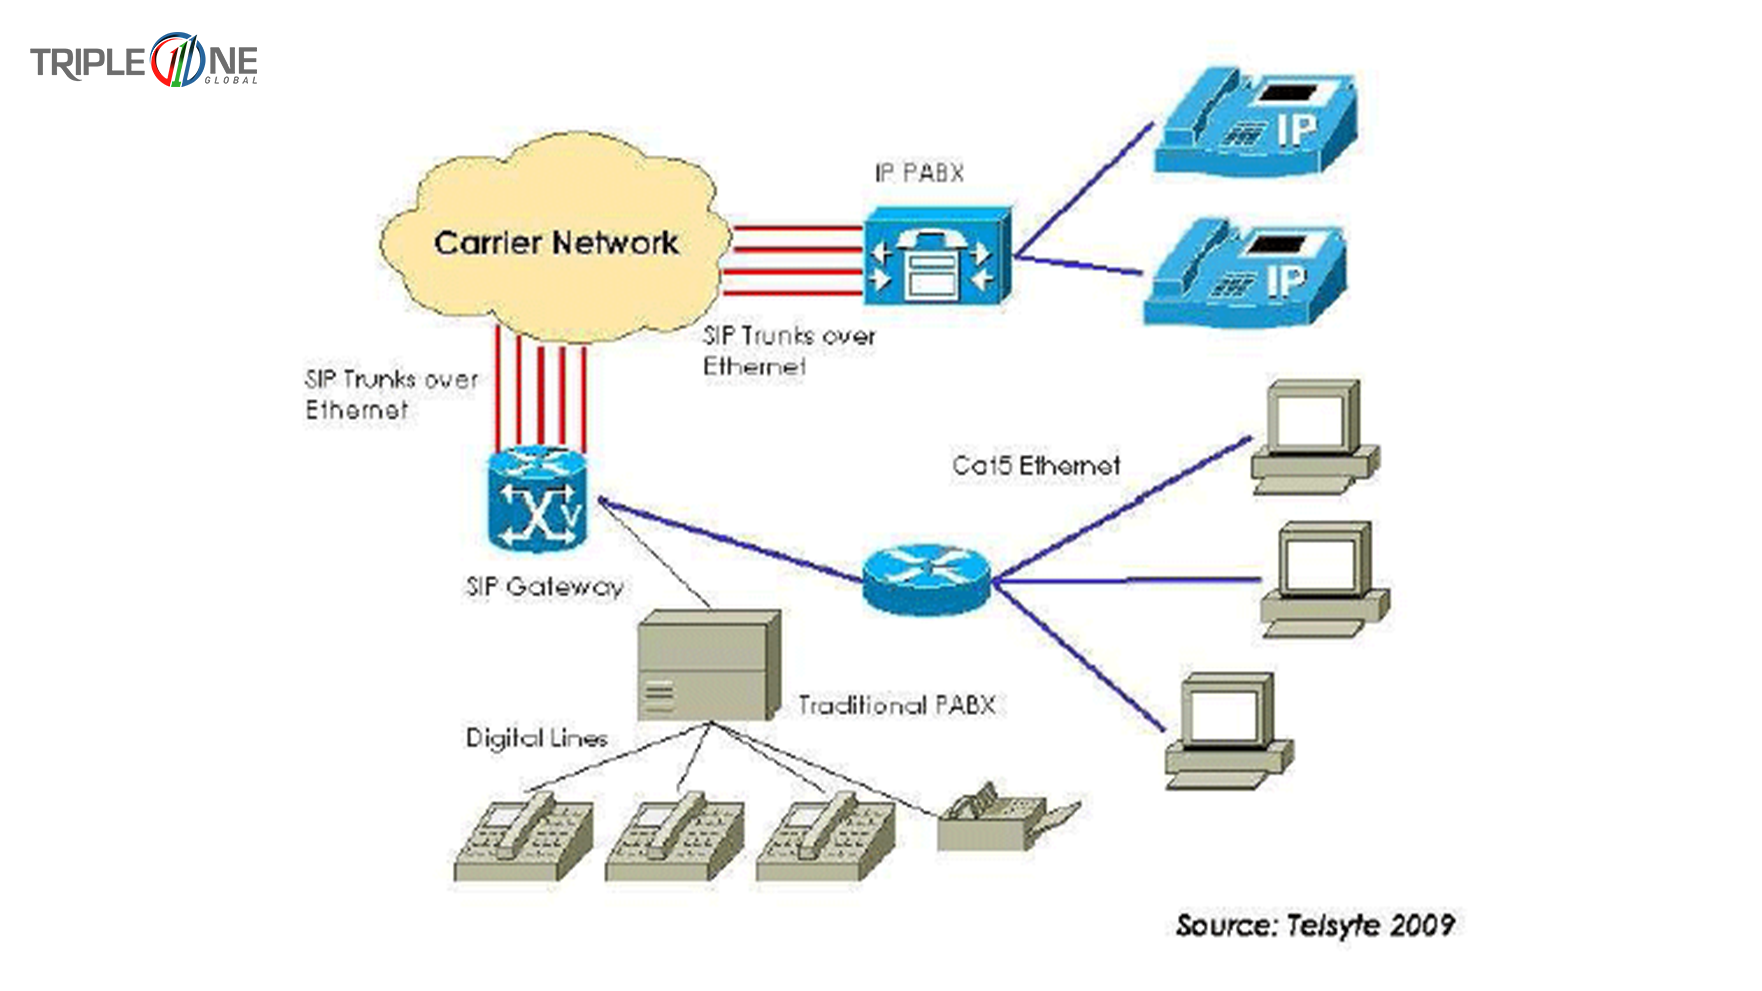 The sip trunking architecture